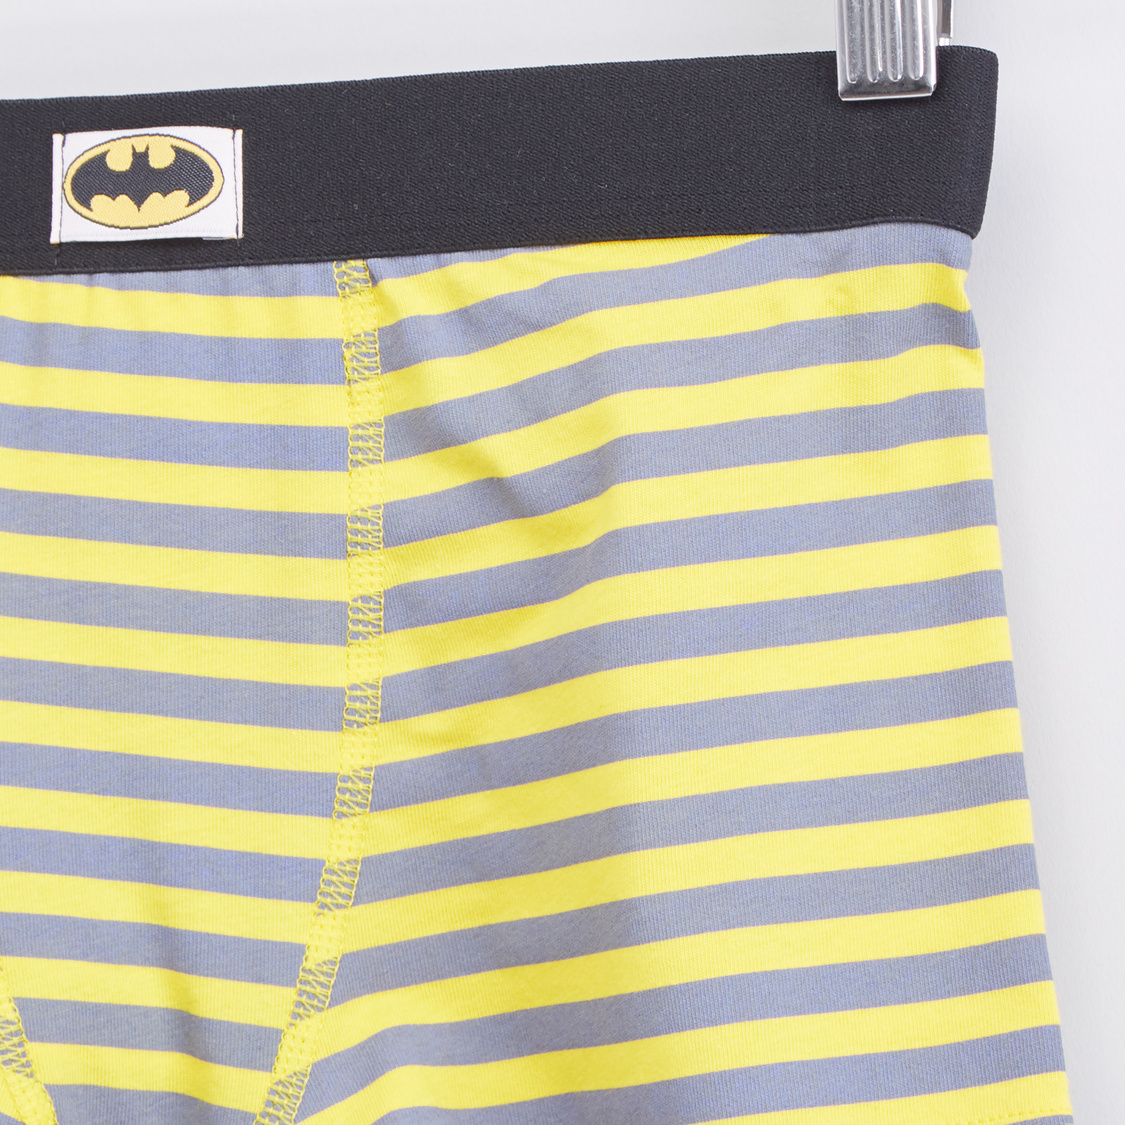 Set of 3 - Batman Printed Trunks with Elasticised Waistband